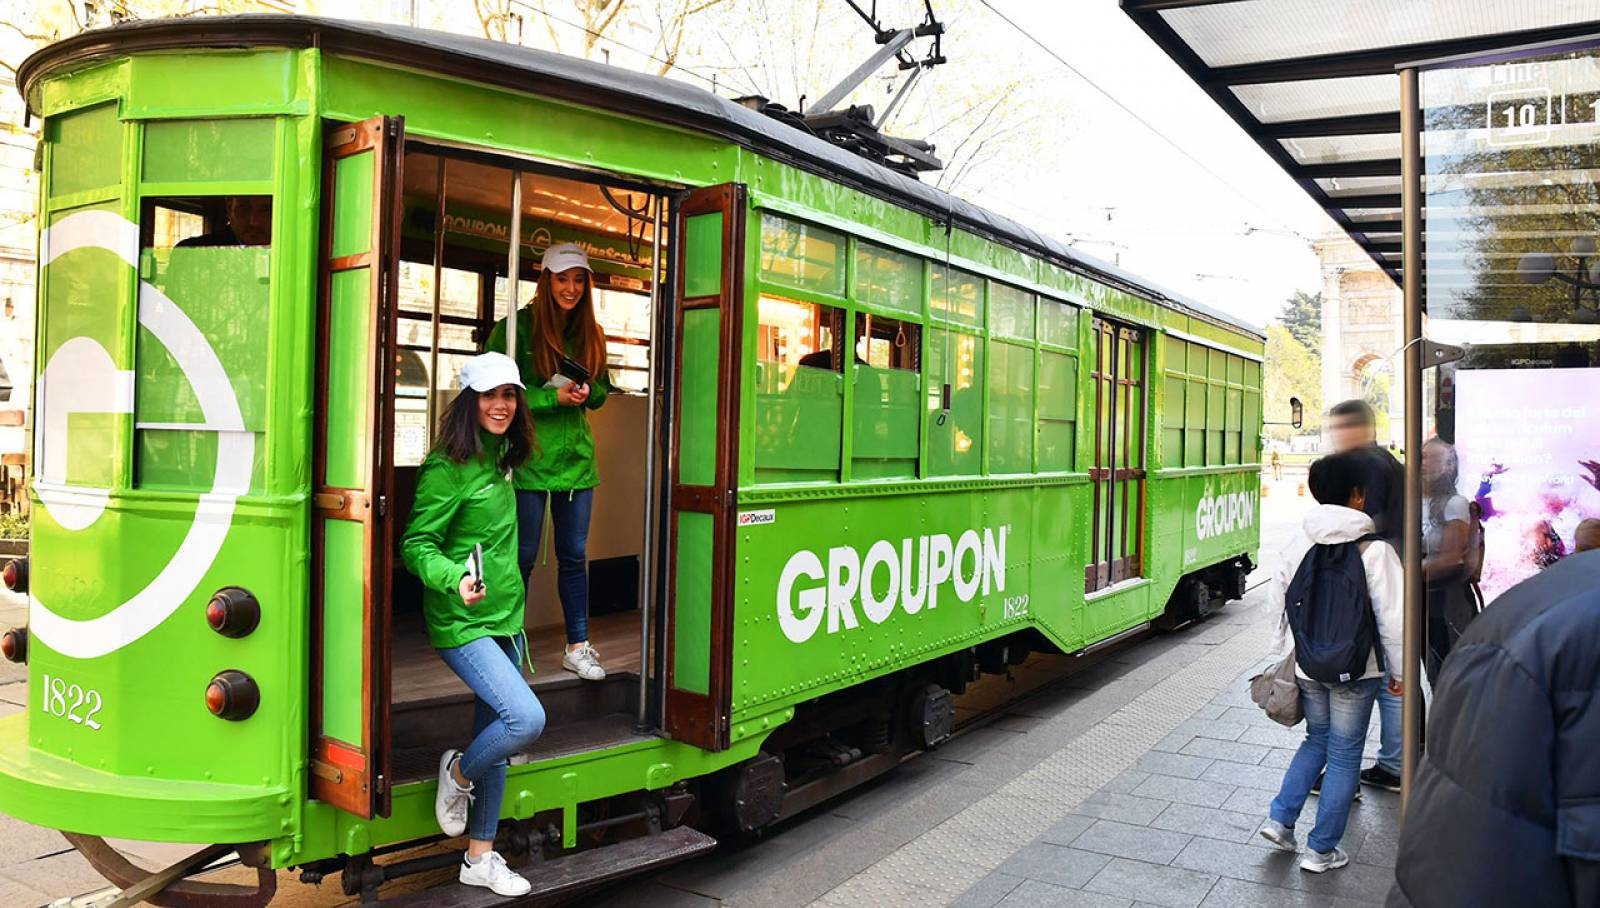 Outdoor advertising IGPDecaux tram for Groupon in Milan